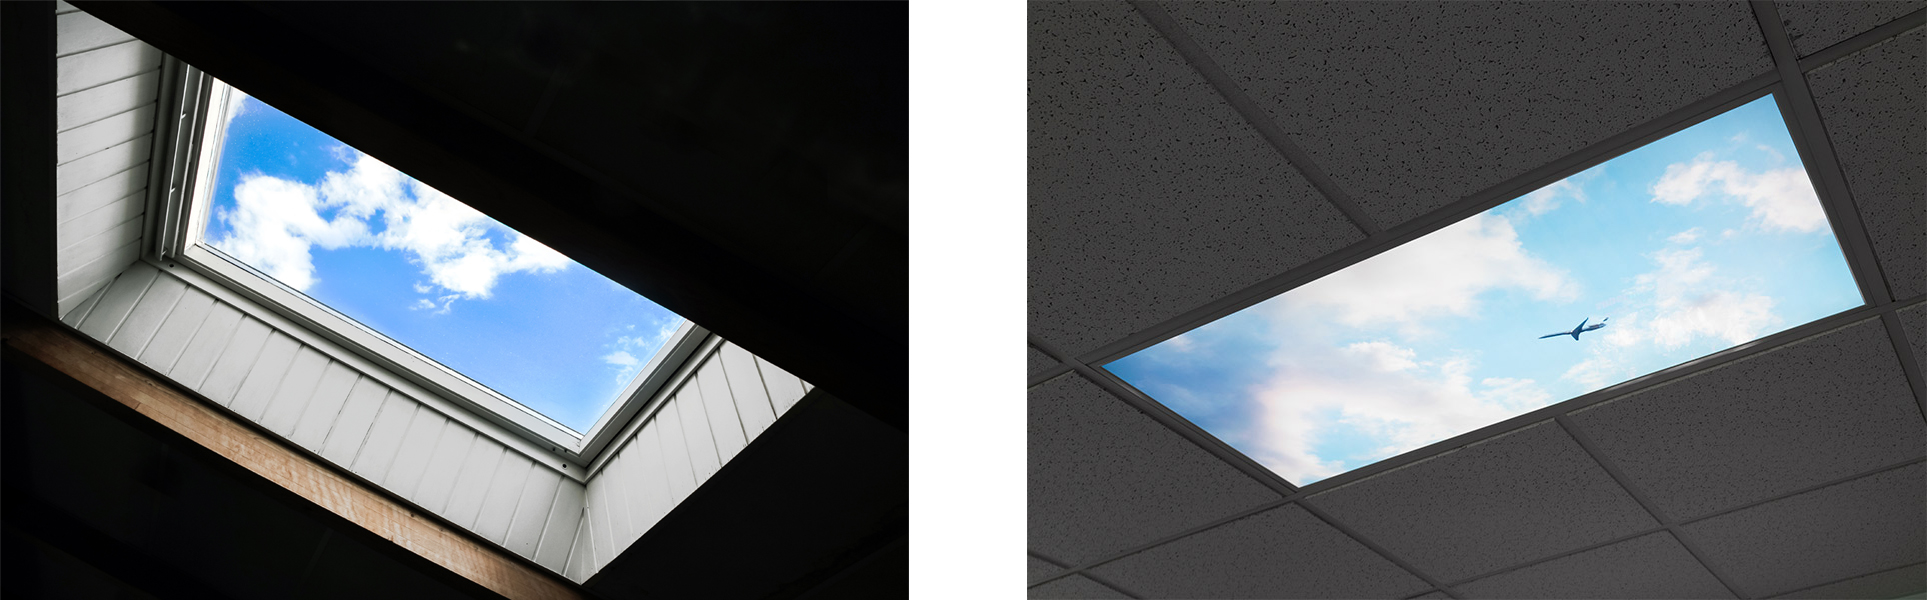 LED Virtual Skylights: An Easy-to-Install Alternative to ...